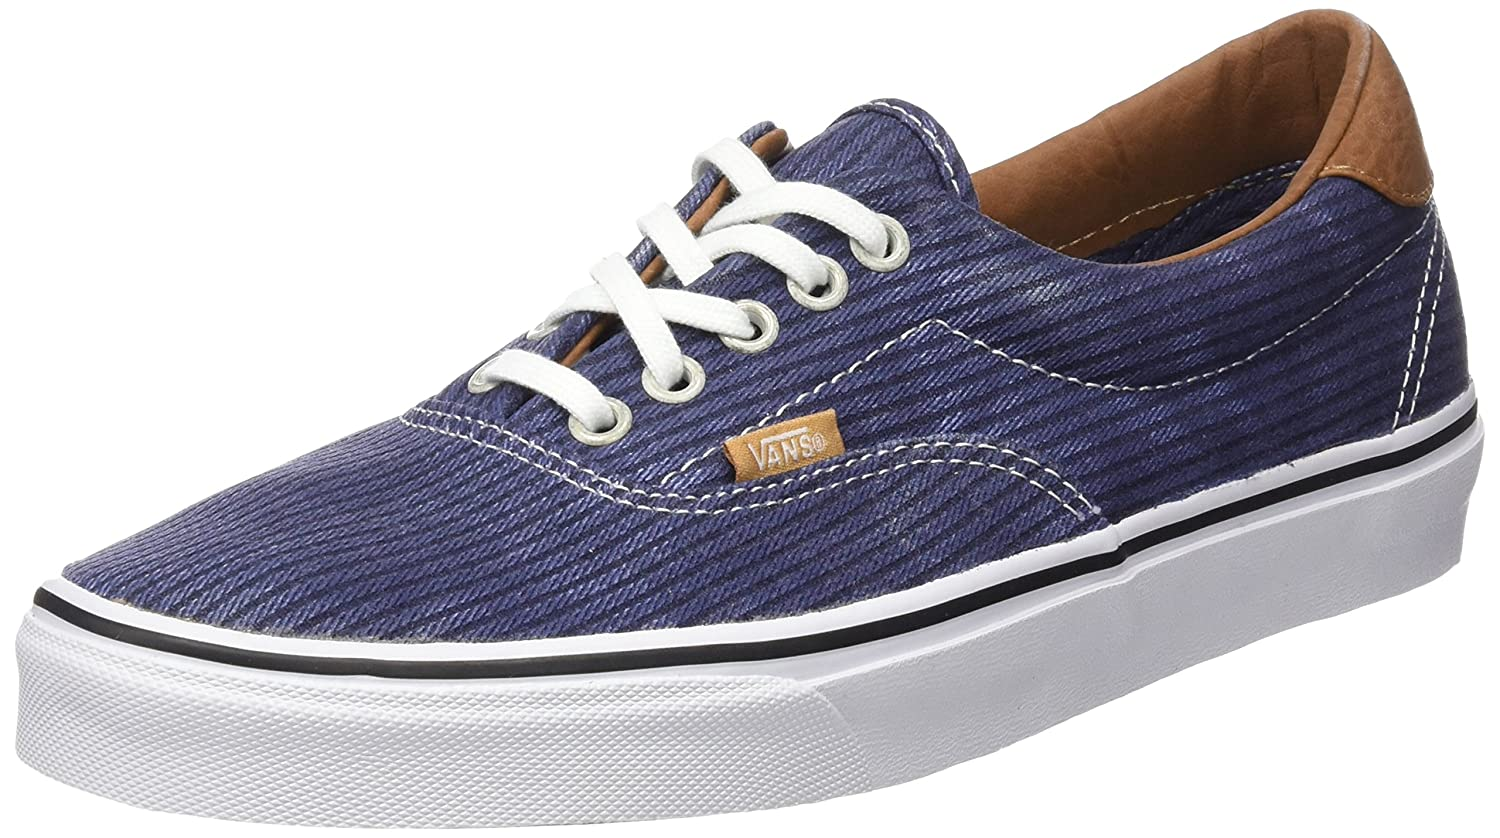 Blau (Washed Herringbone Navy) Vans Unisex-Erwachsene Era 59 Low-top